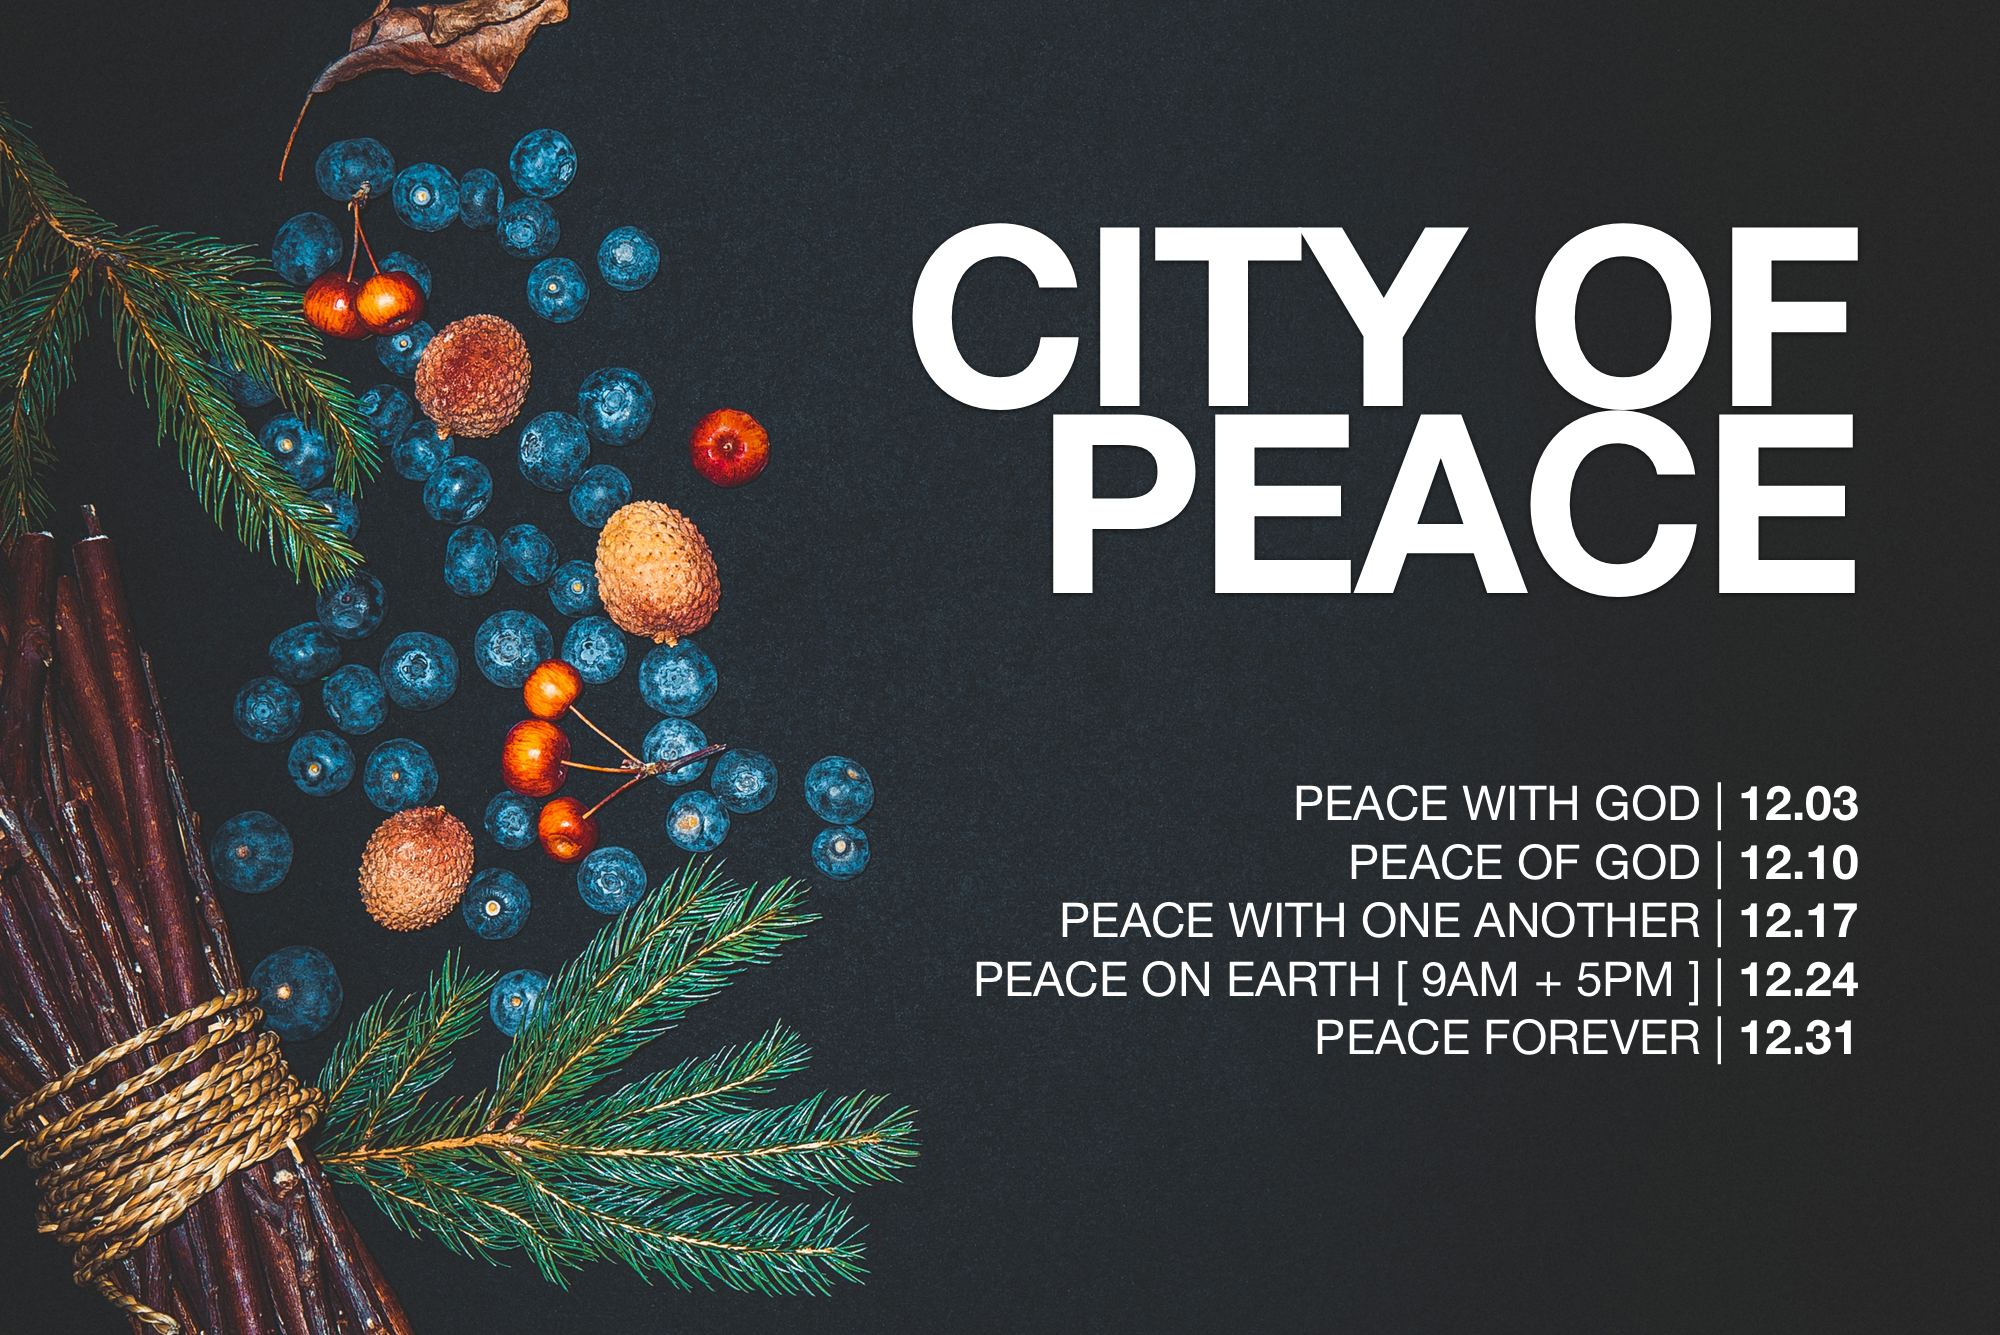 city+of+peace+graphic.png